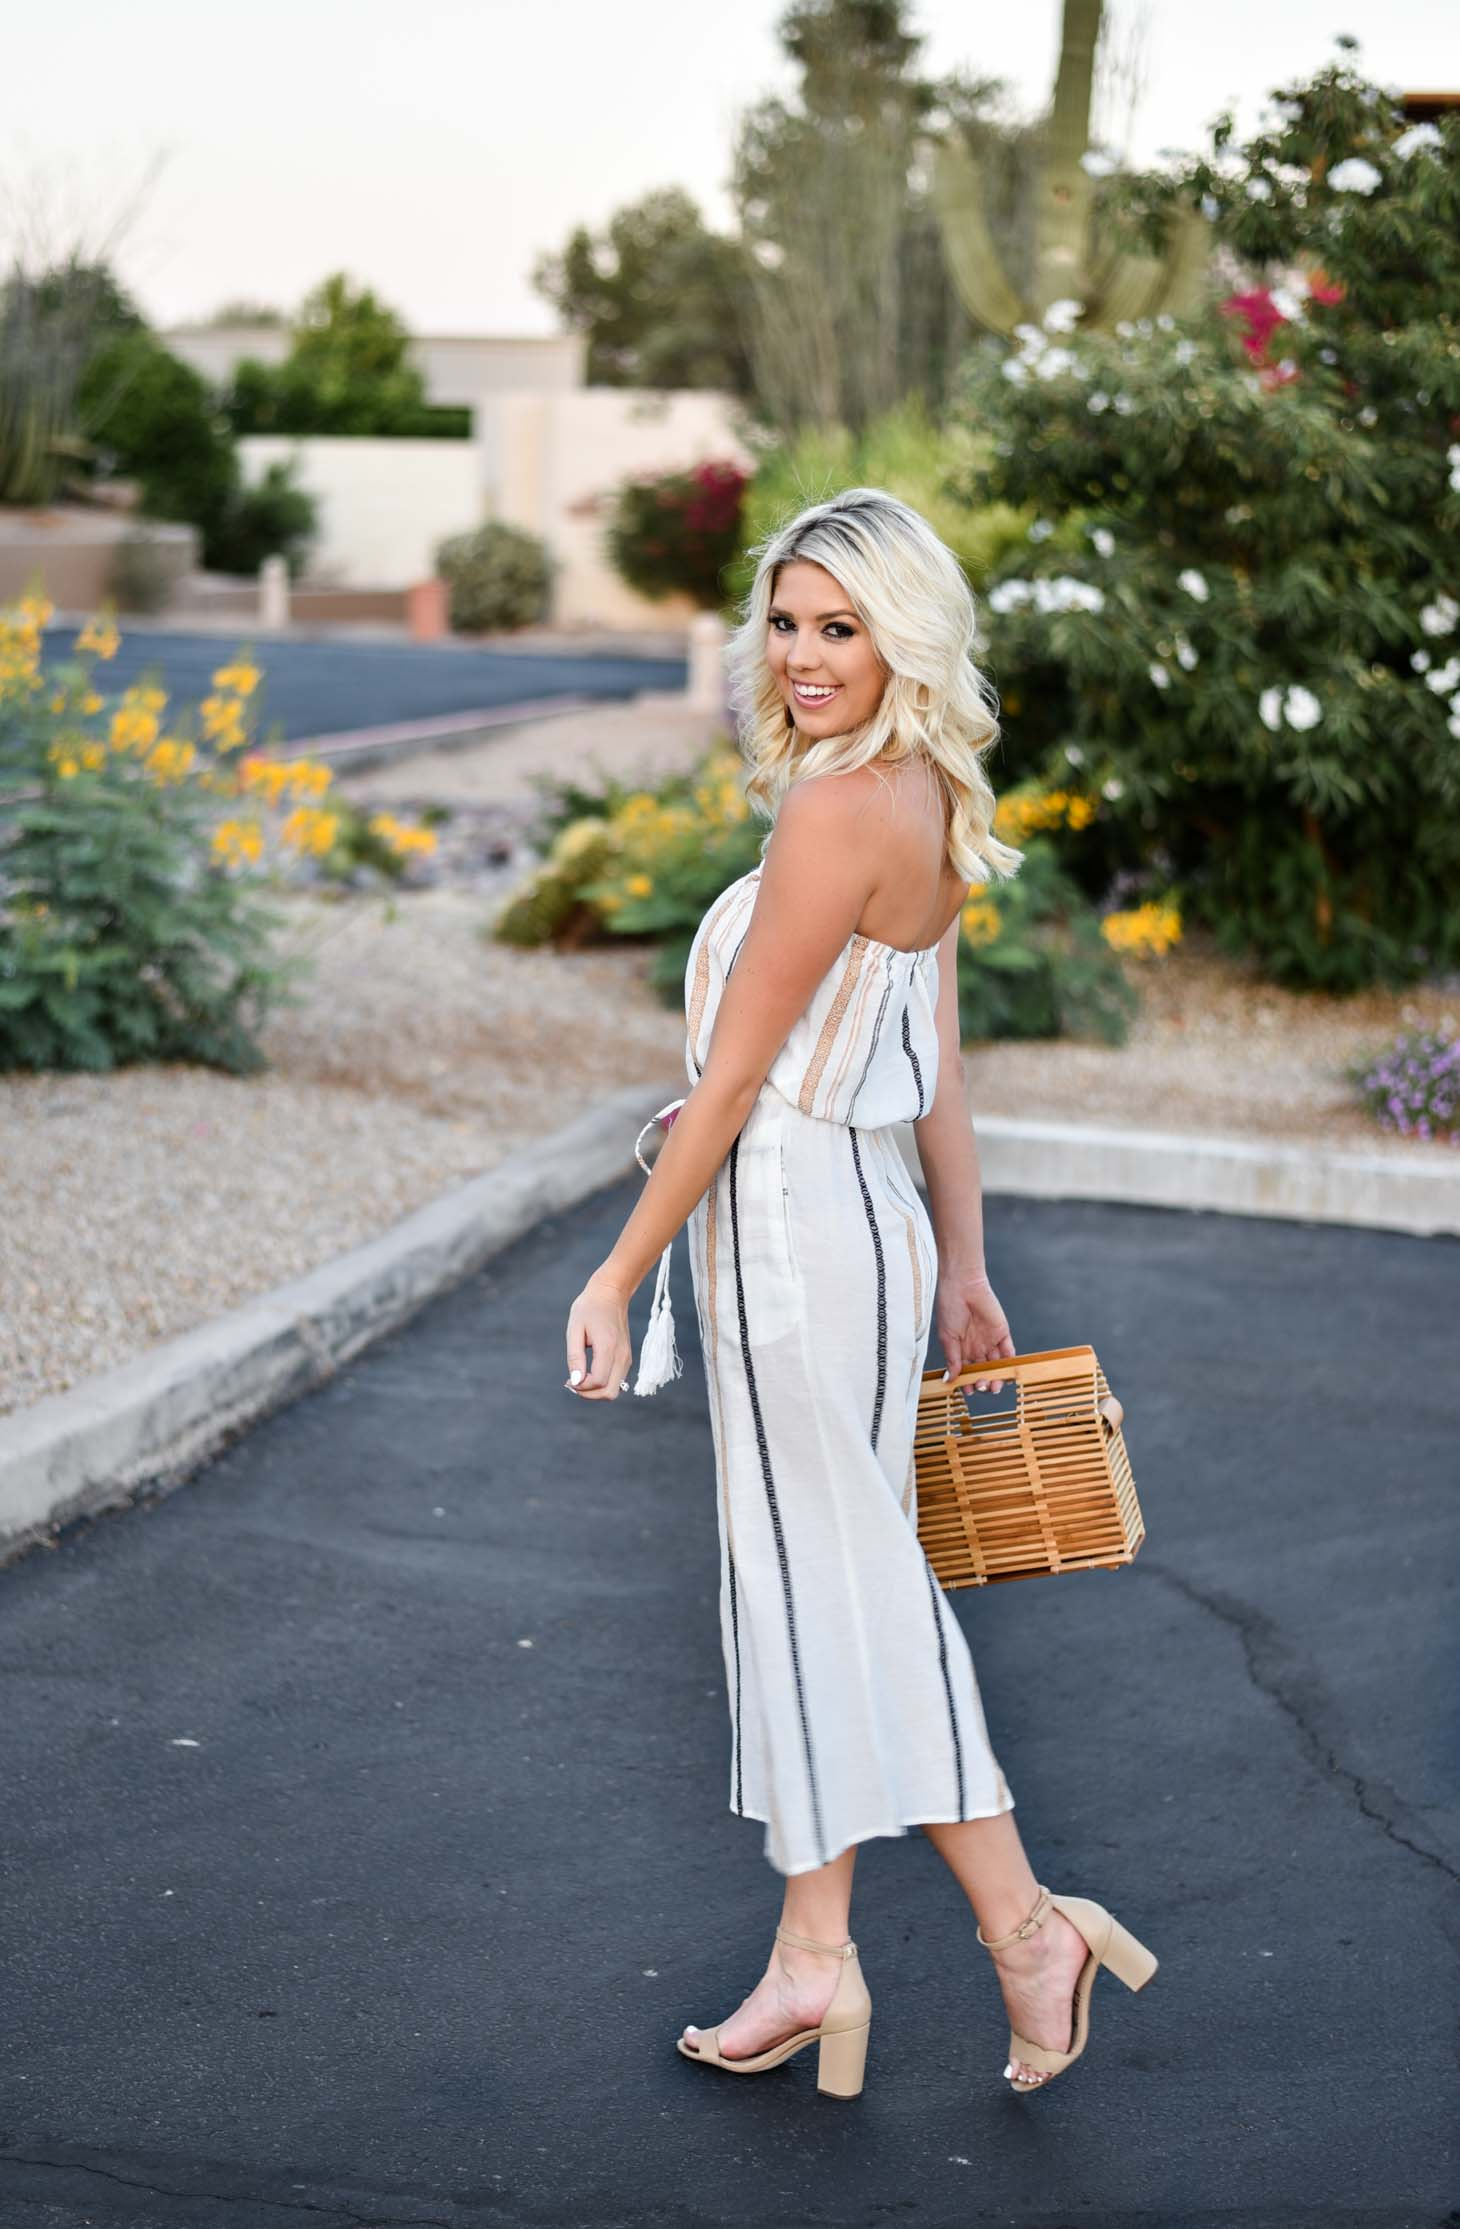 Erin Elizabeth of Wink and a Twirl shares this Vici Dolls striped jumpsuit and bamboo bag perfect for summer